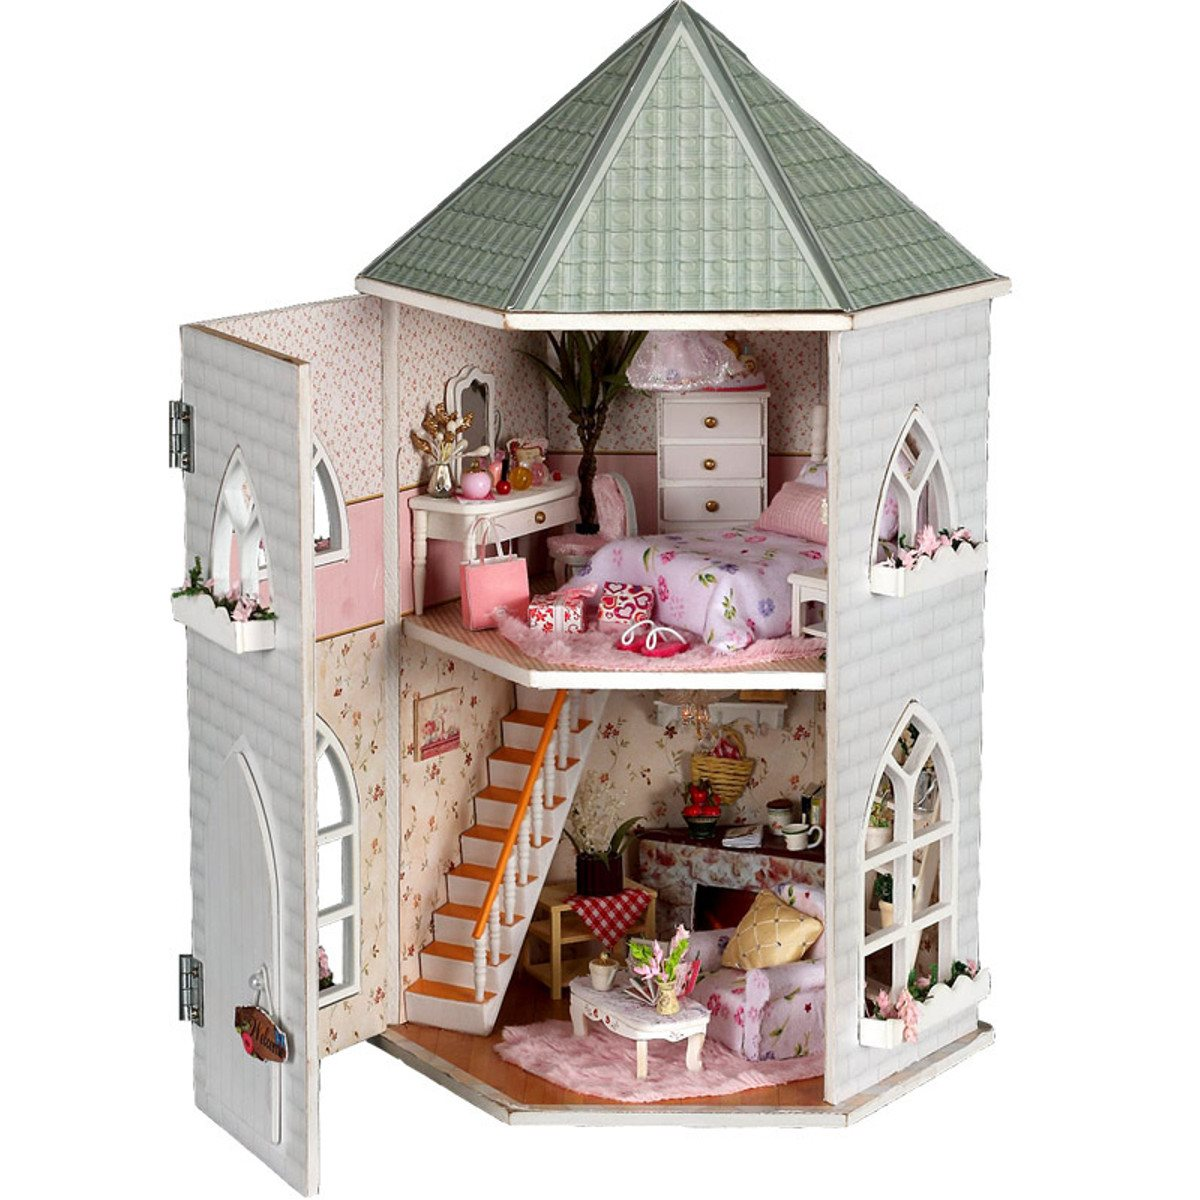 Love Castle DIY Wooden Dollhouse Miniature With Light And Furniture Kits font b Toy b font